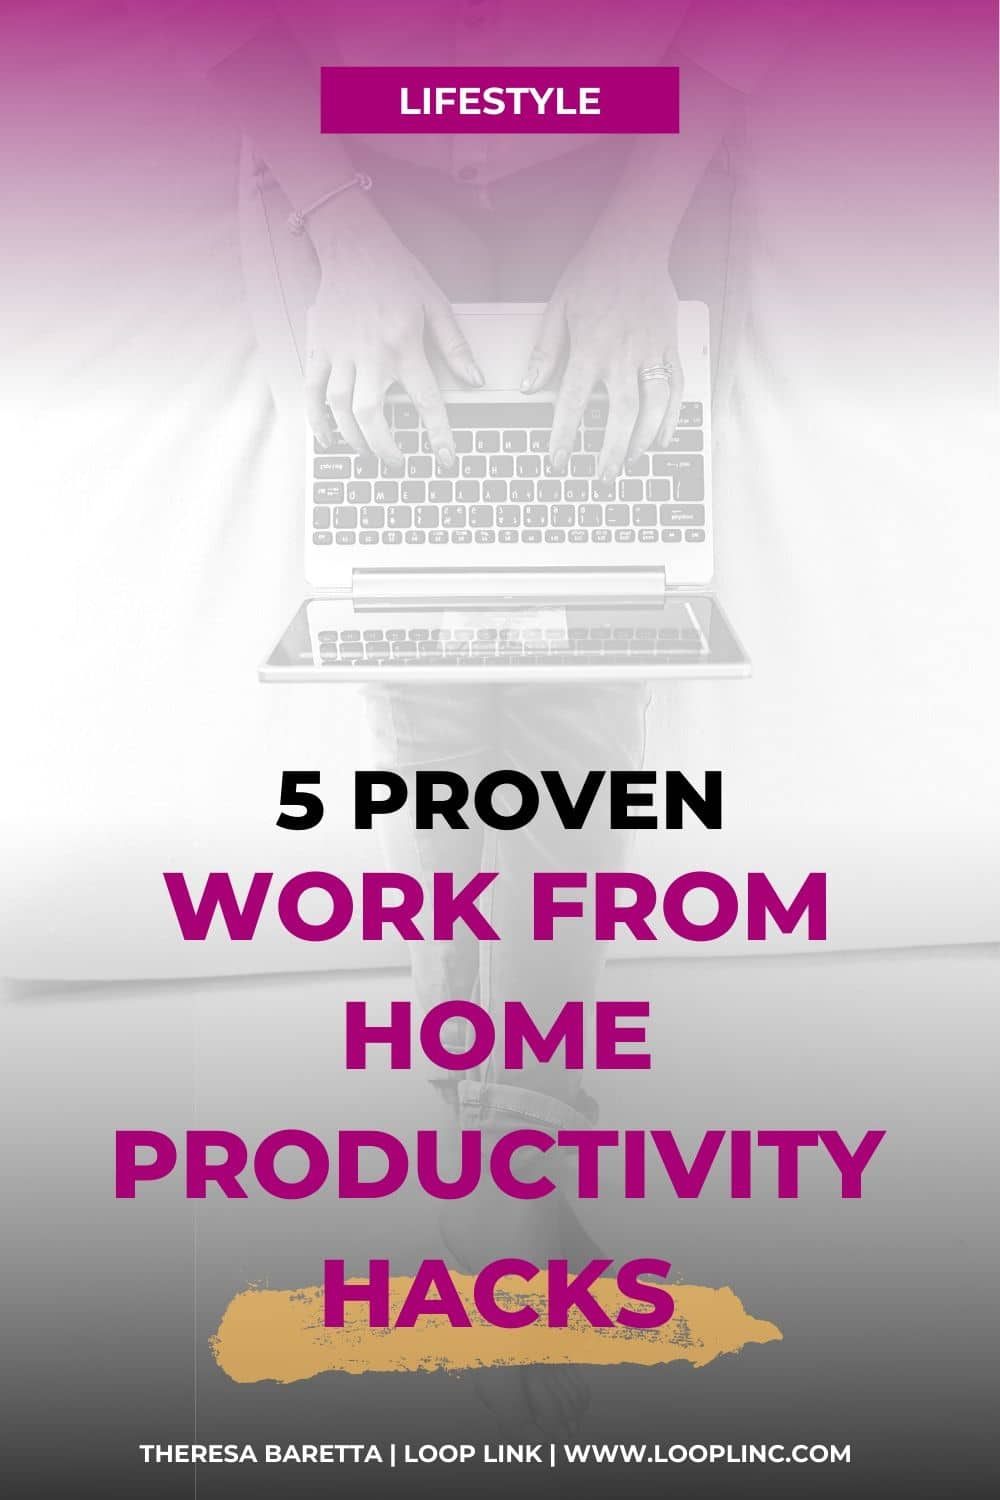 Whether you recently started working from home due to coronavirus or you're simply interested in ways to improve productivity when working remotely, this blog has the information you're looking for.